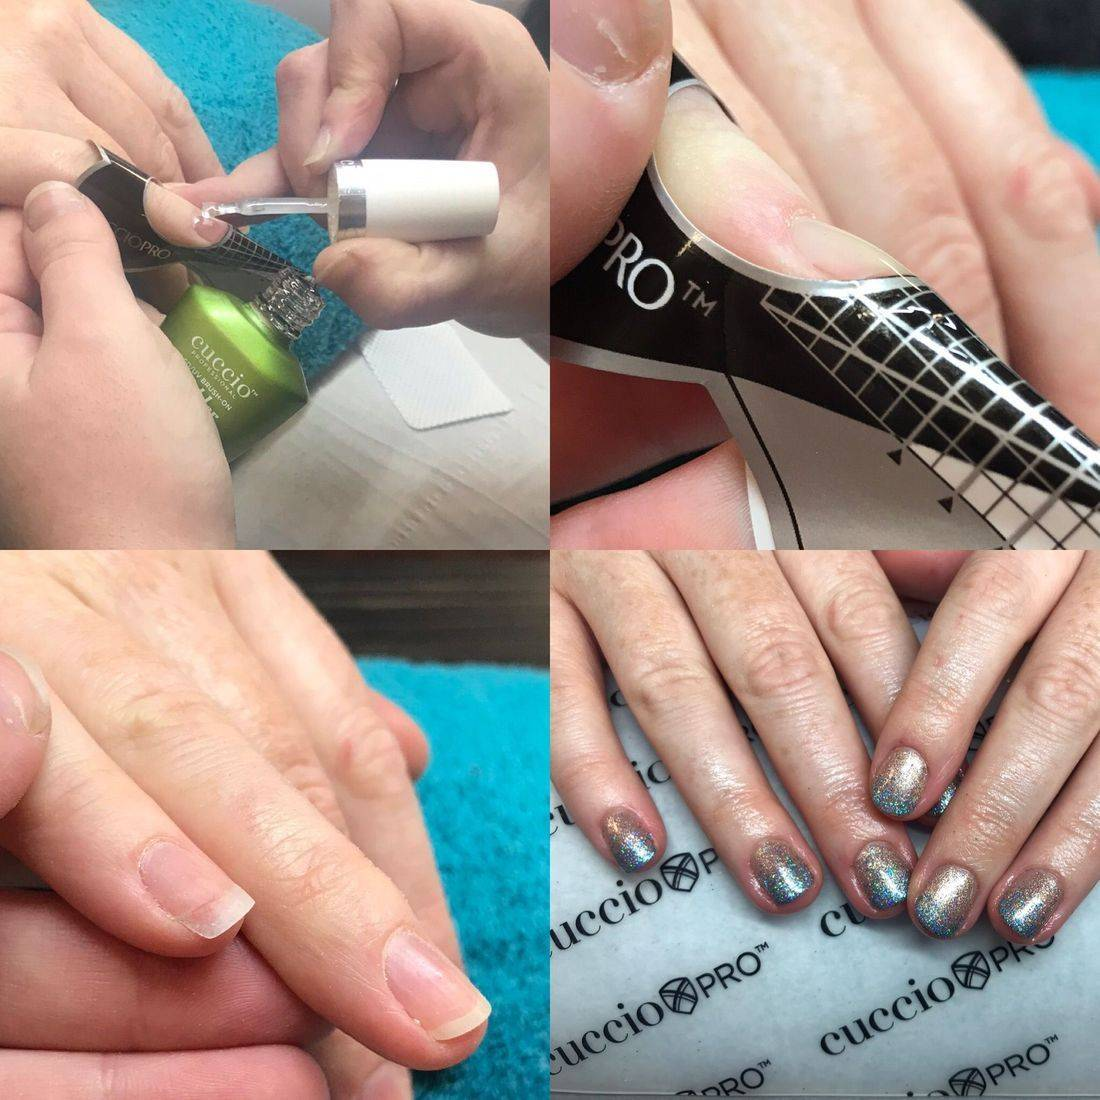 gaynor louise nail academy, manicure training bury, manchester, north west  pedicure training bury, manchester, north west, nail gel polish training, cuccio nail courses,